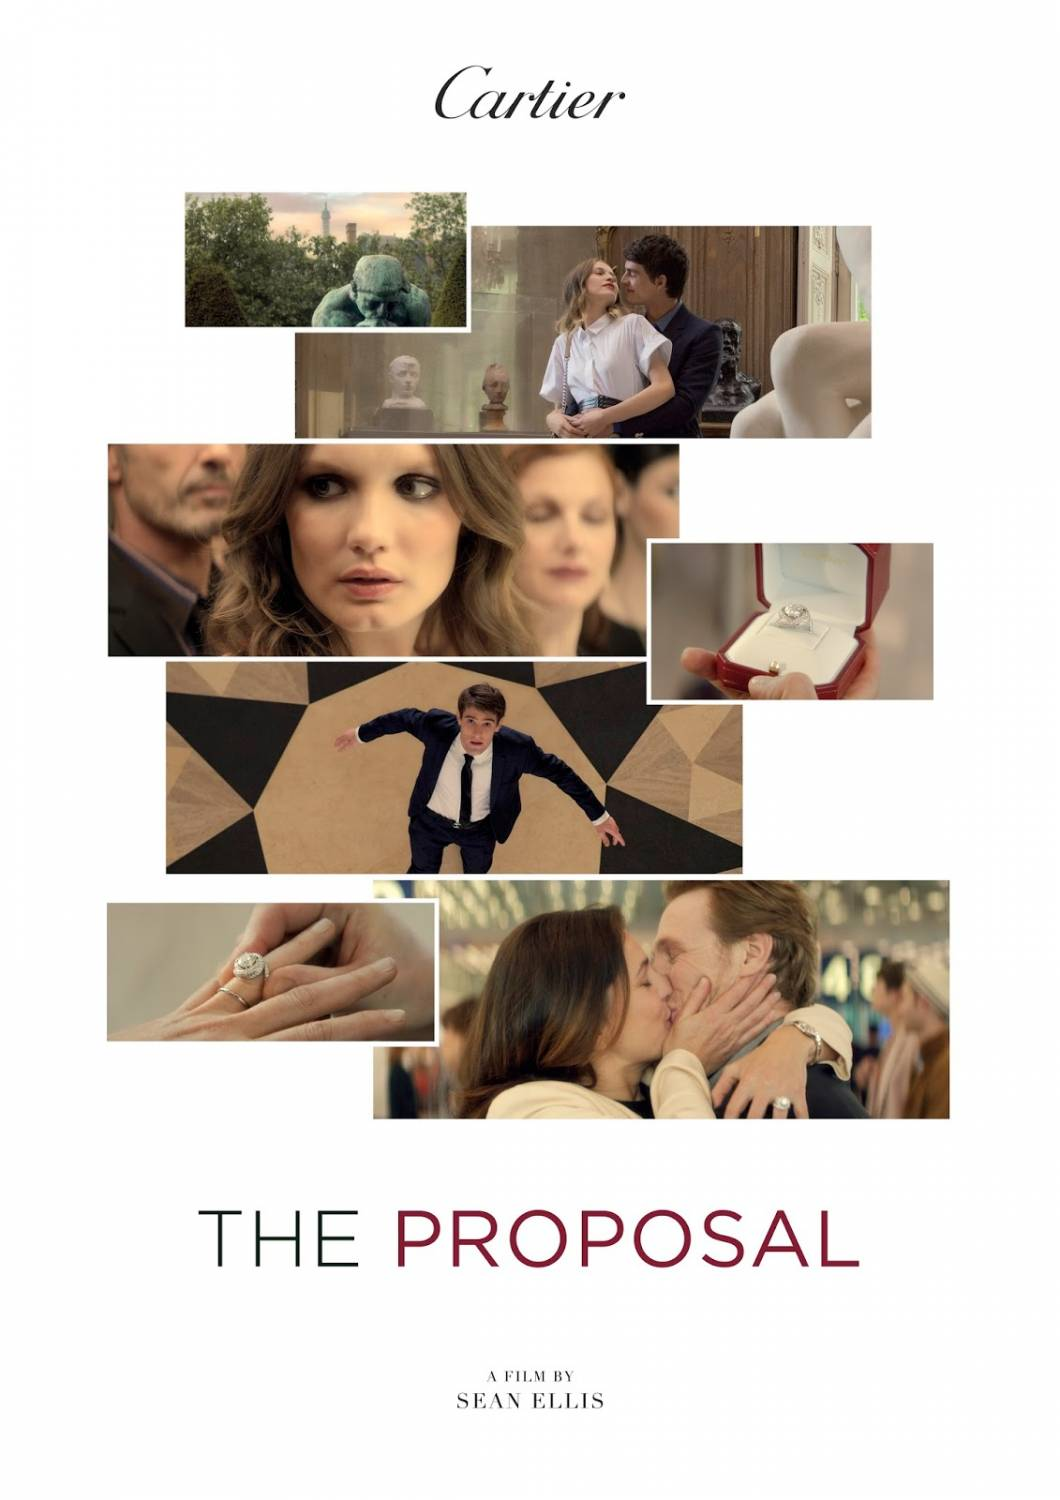 Музыка и видеоролик из рекламы Cartier - The Proposal